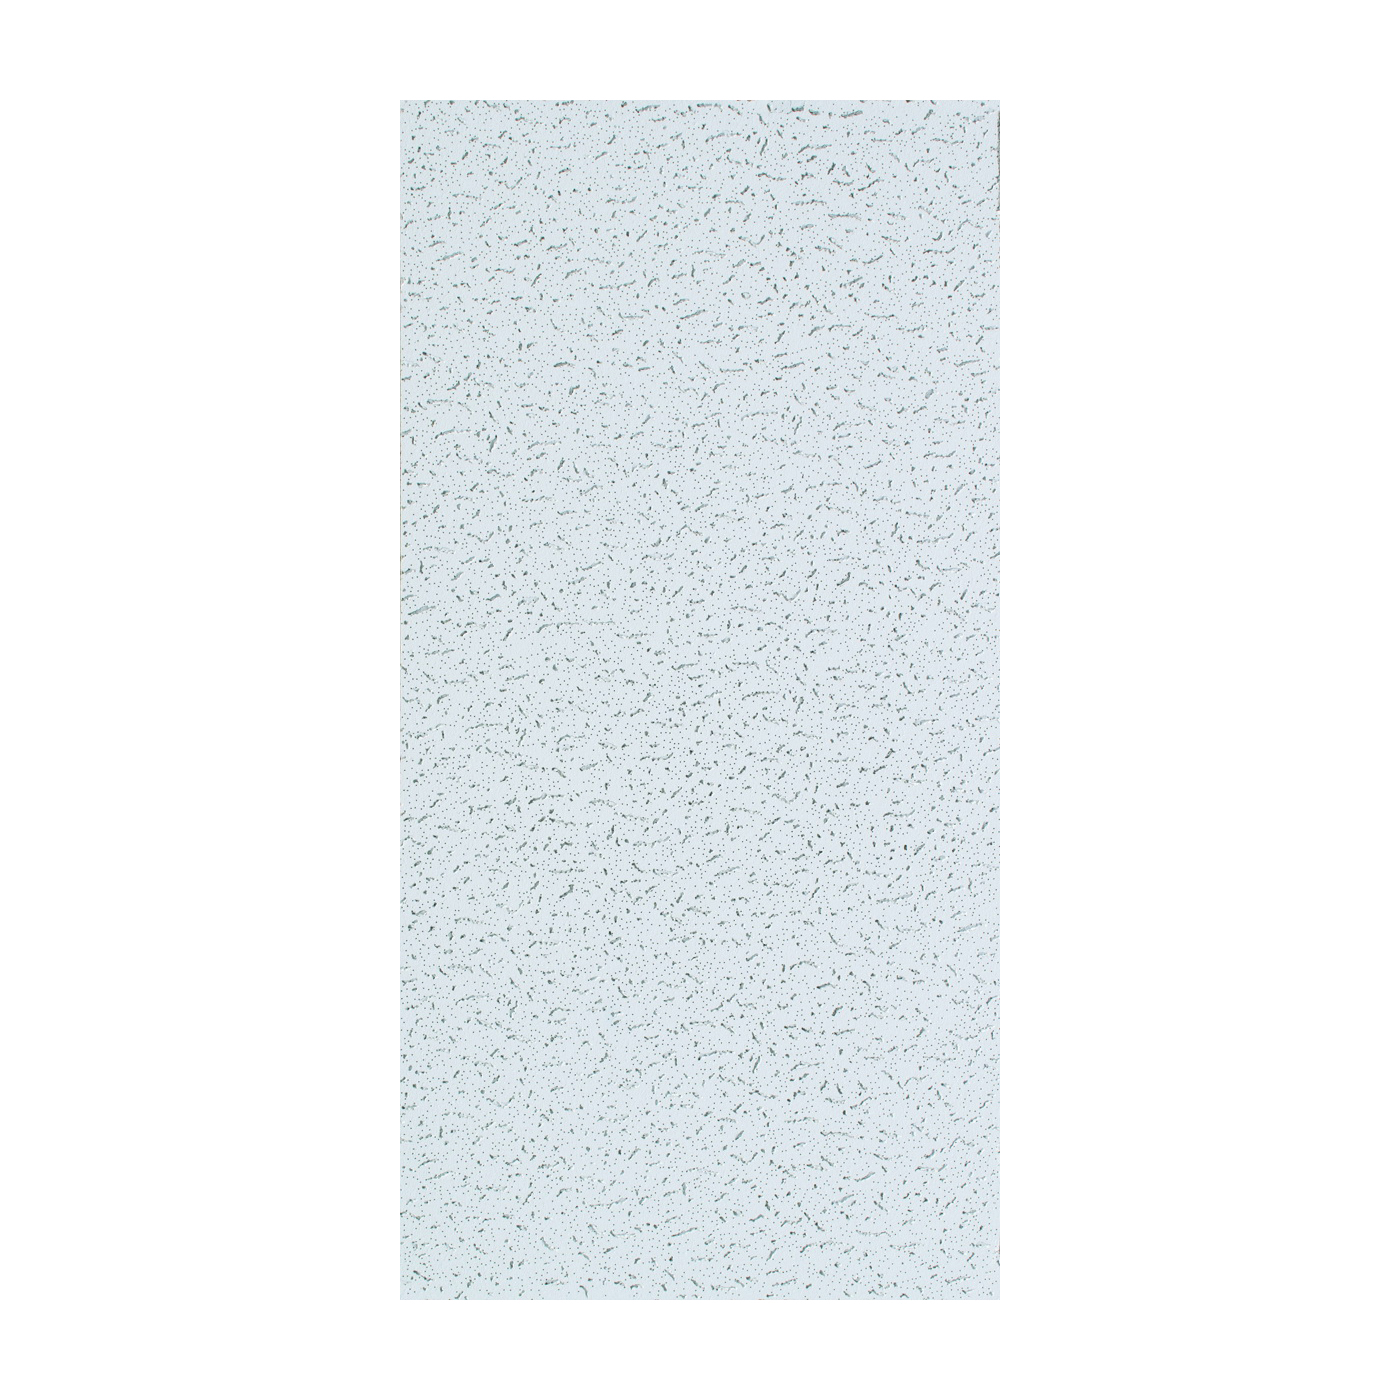 Picture of USG FIFTH AVENUE 280 Ceiling Panel, 4 ft L, 2 ft W, 5/8 in Thick, Mineral Fiber, White